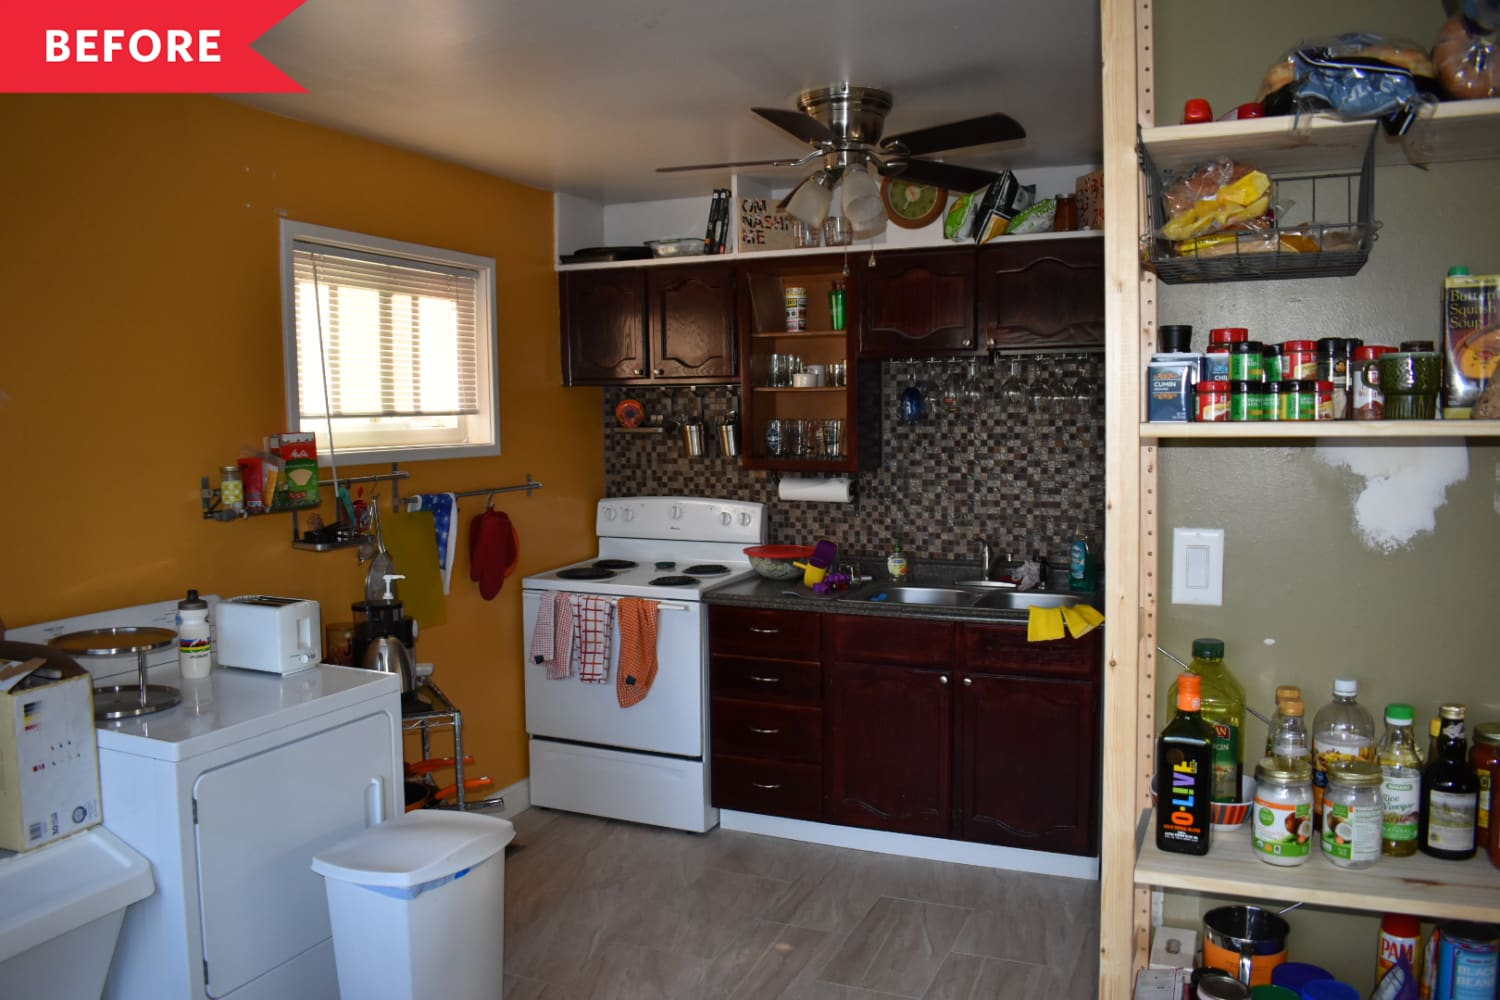 Before and After: A Smart Layout Change Makes This Kitchen's Cook Space Twice as Big